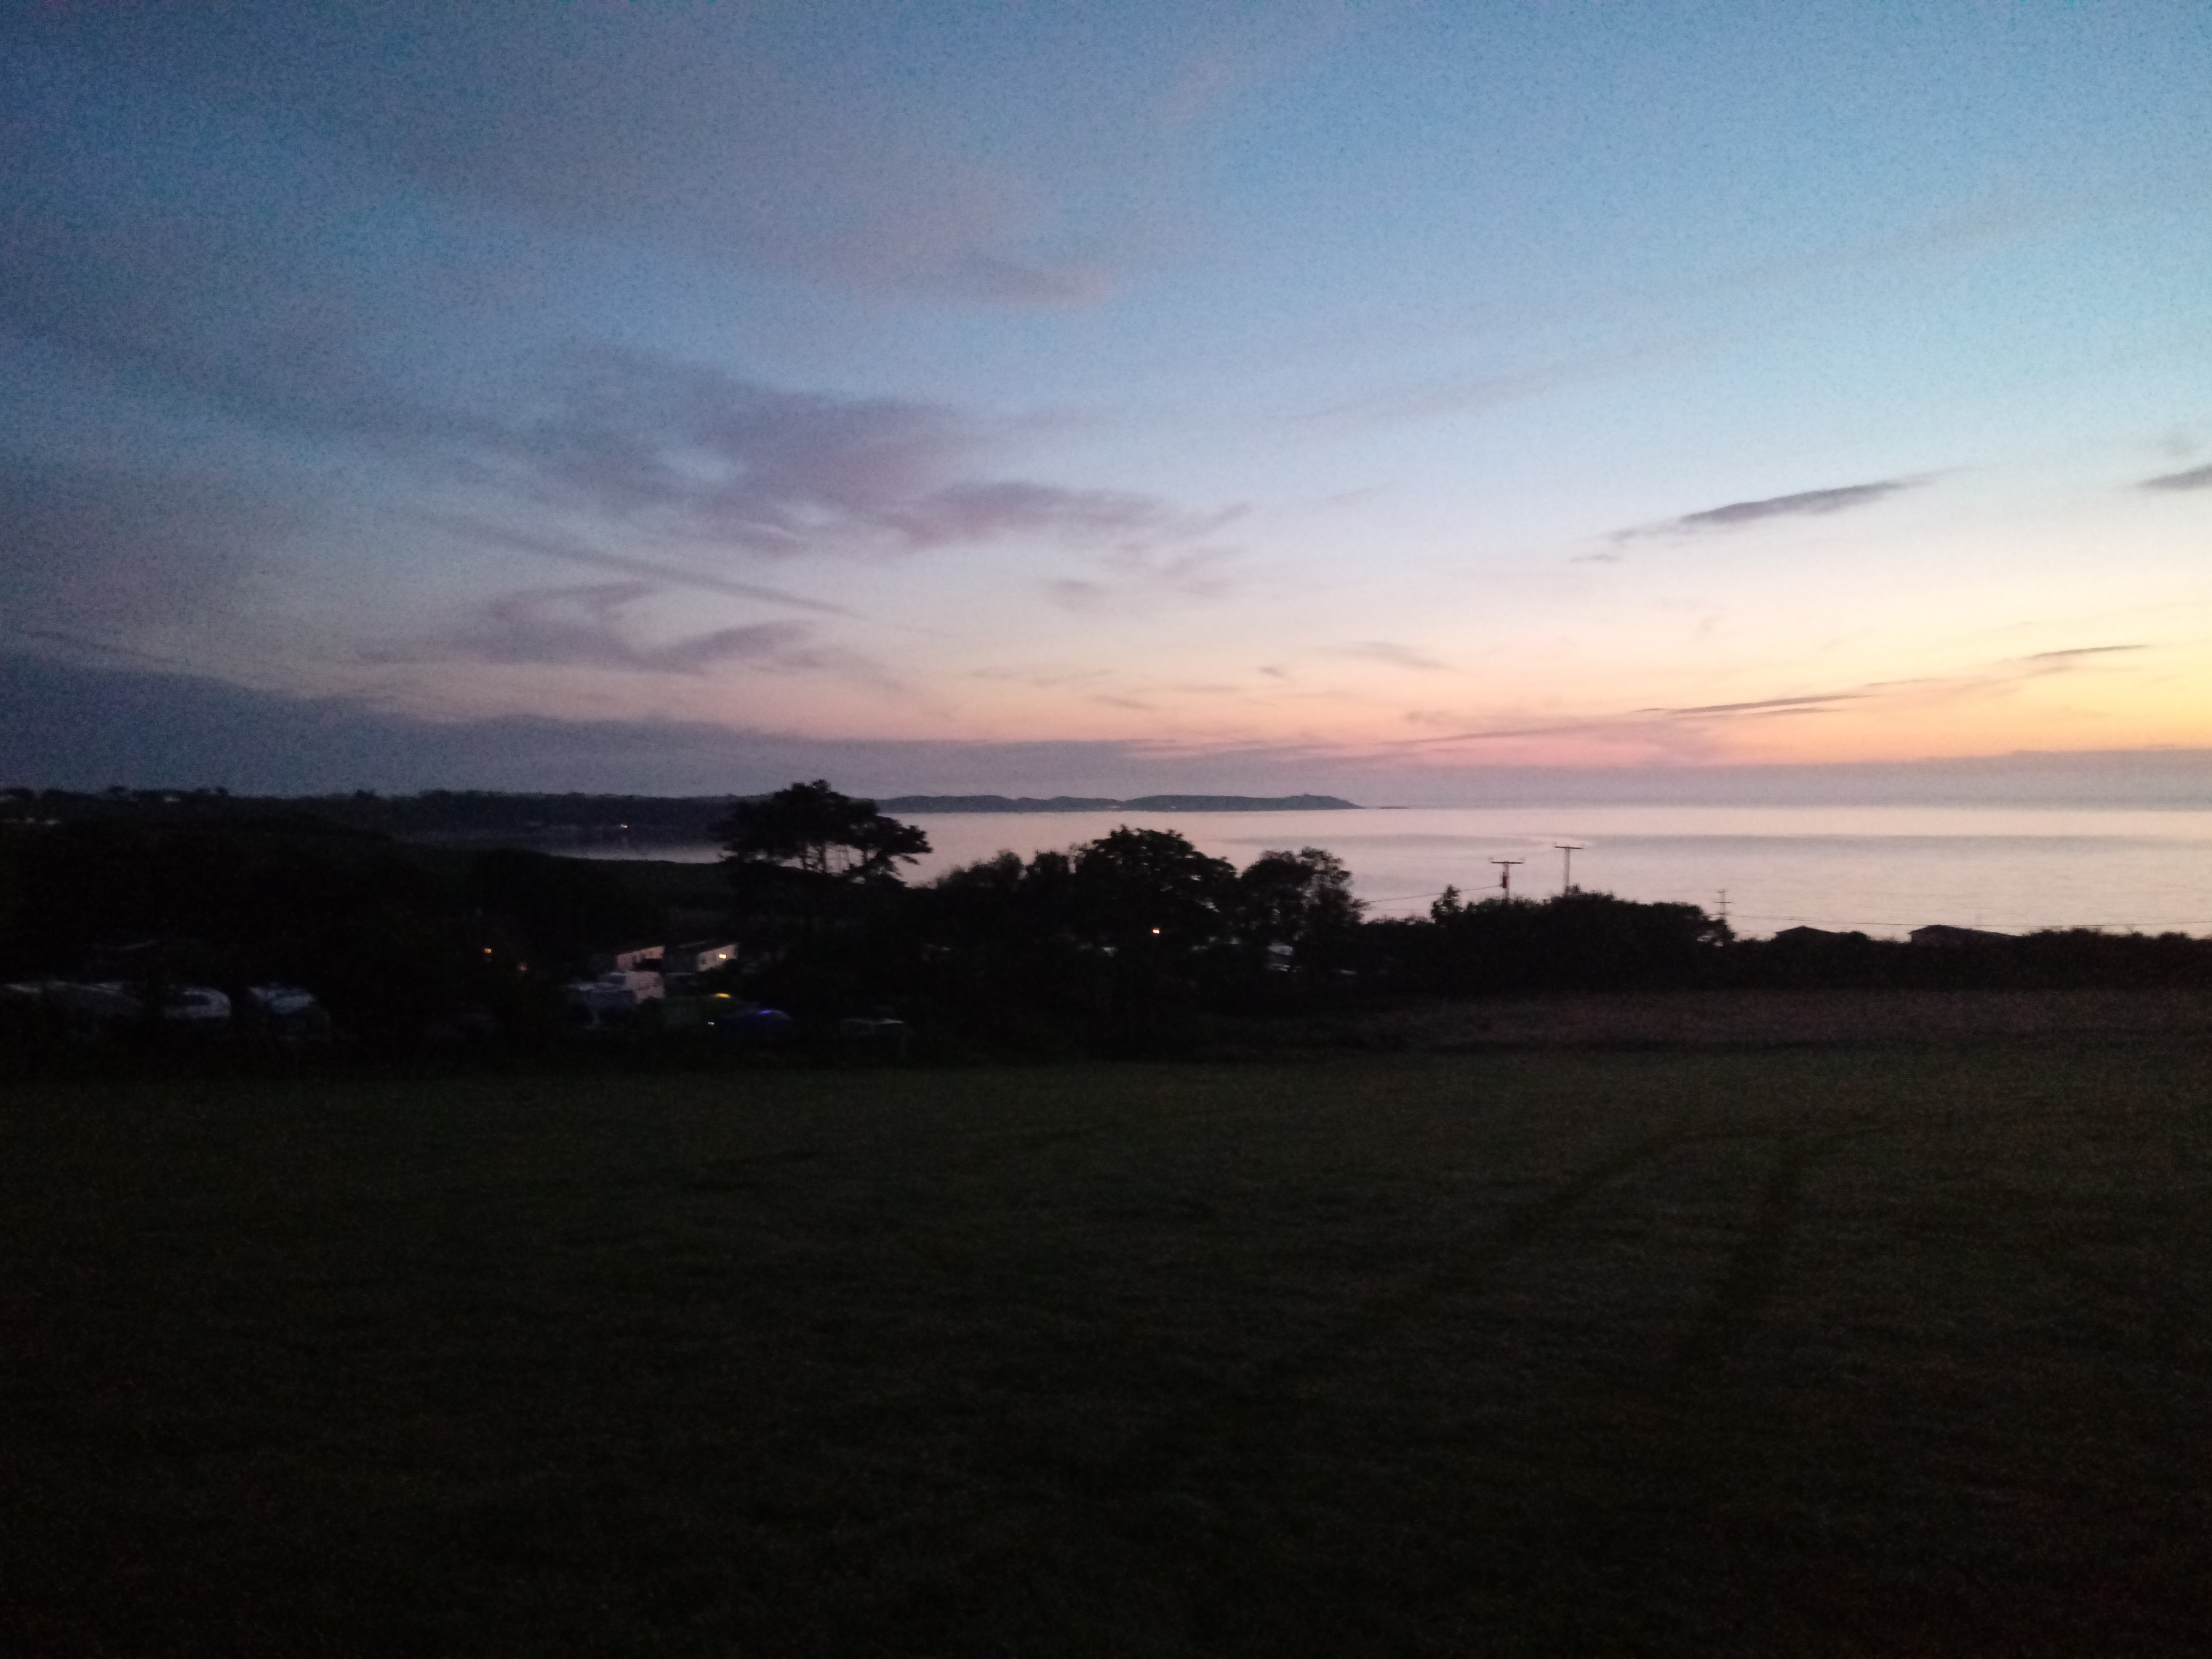 The image is a picture of the campsite during the evening time, looking out over the campsite you can see the sea in the distance as well as Morfa Nefyn